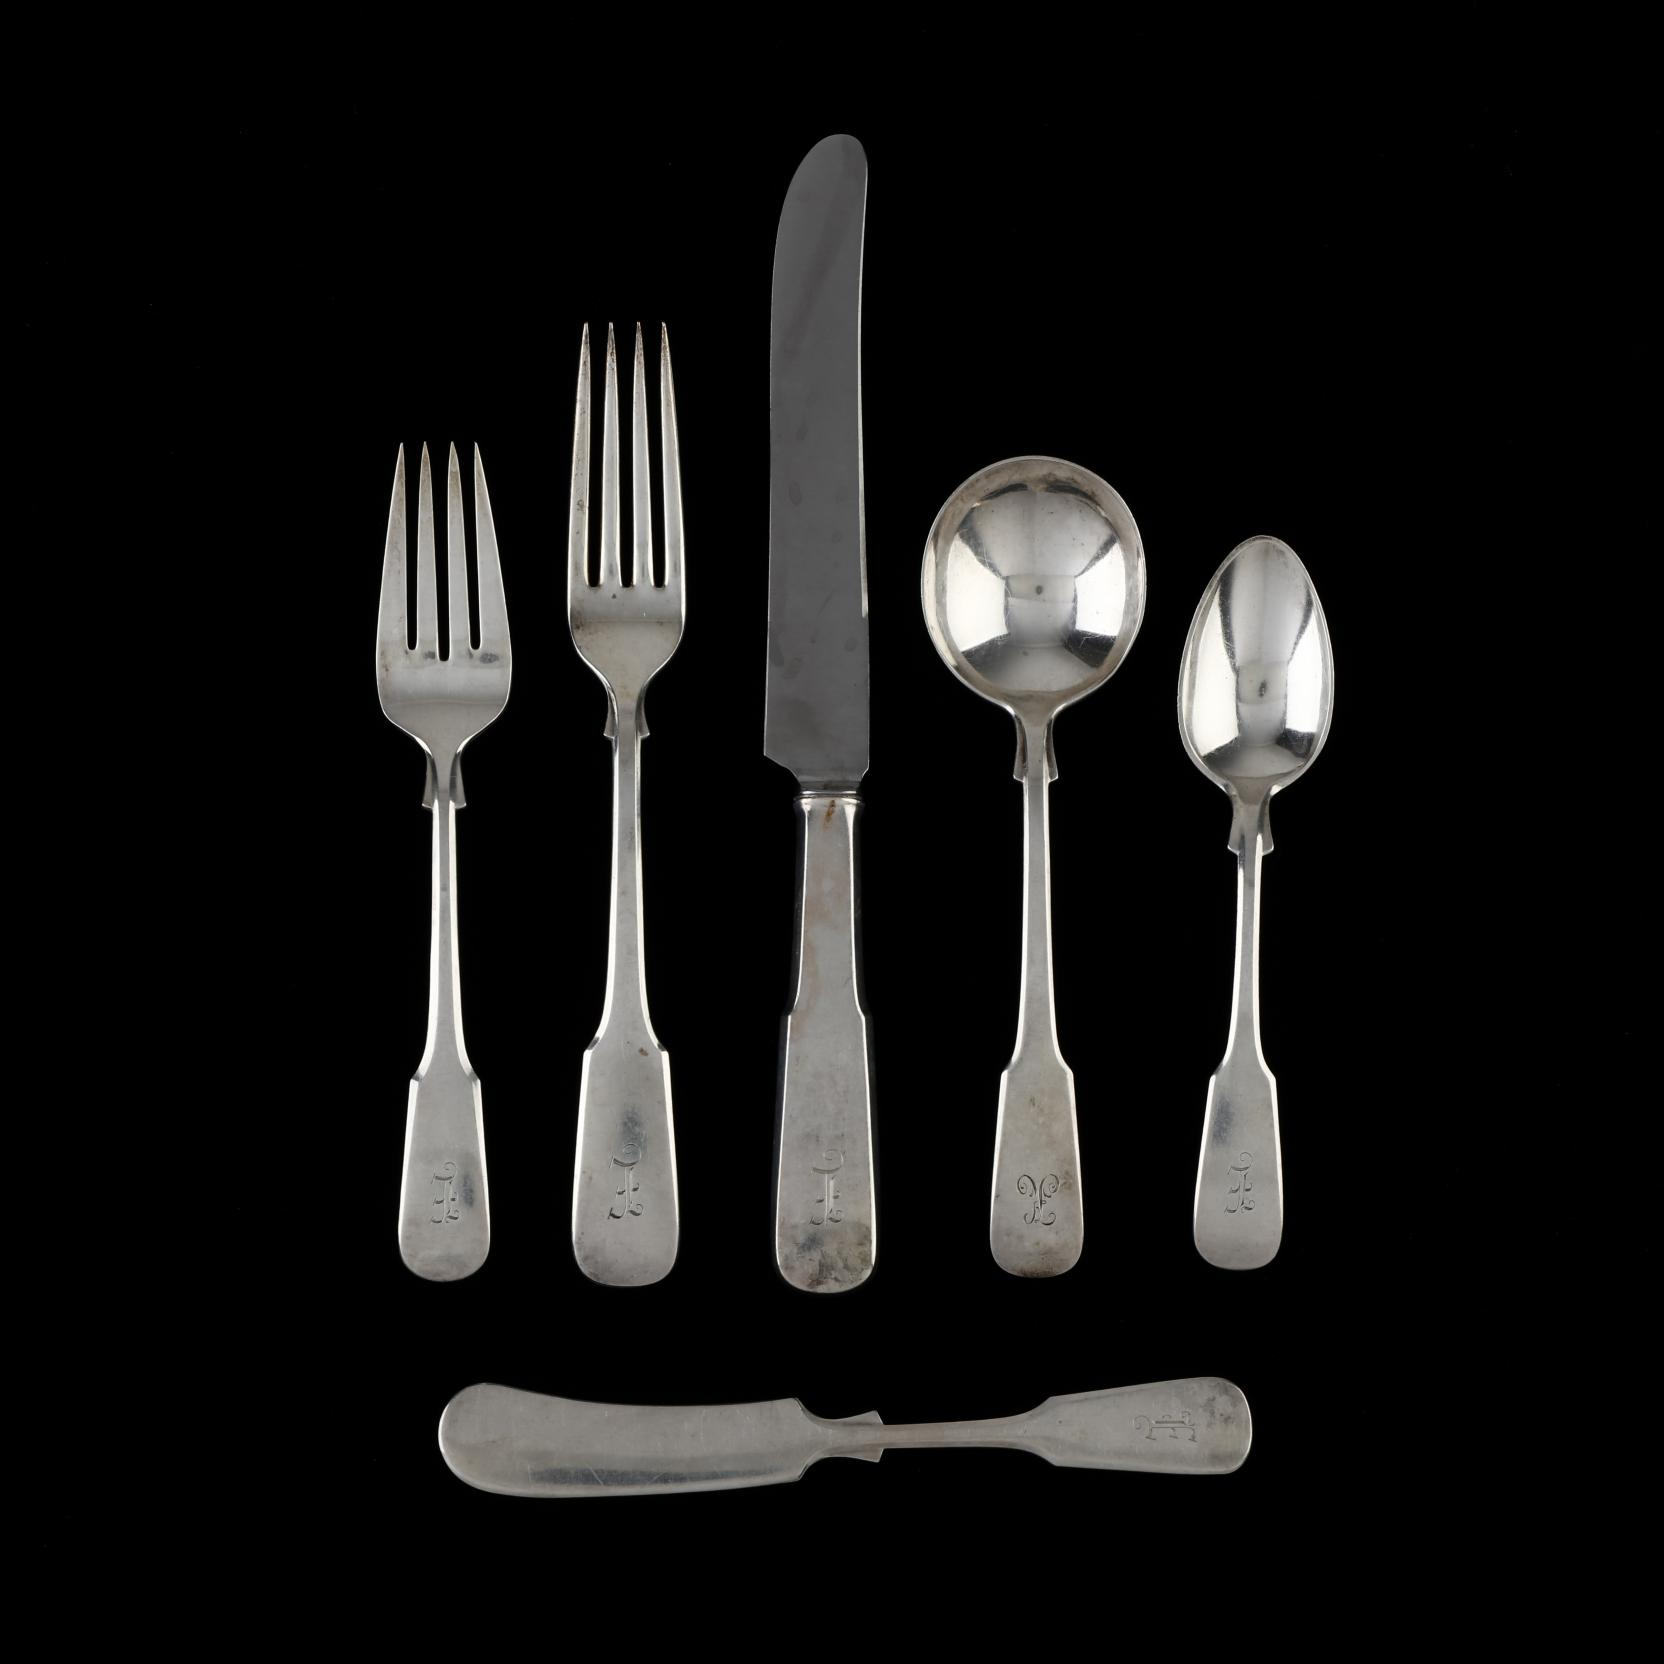 international-1810-sterling-silver-flatware-service